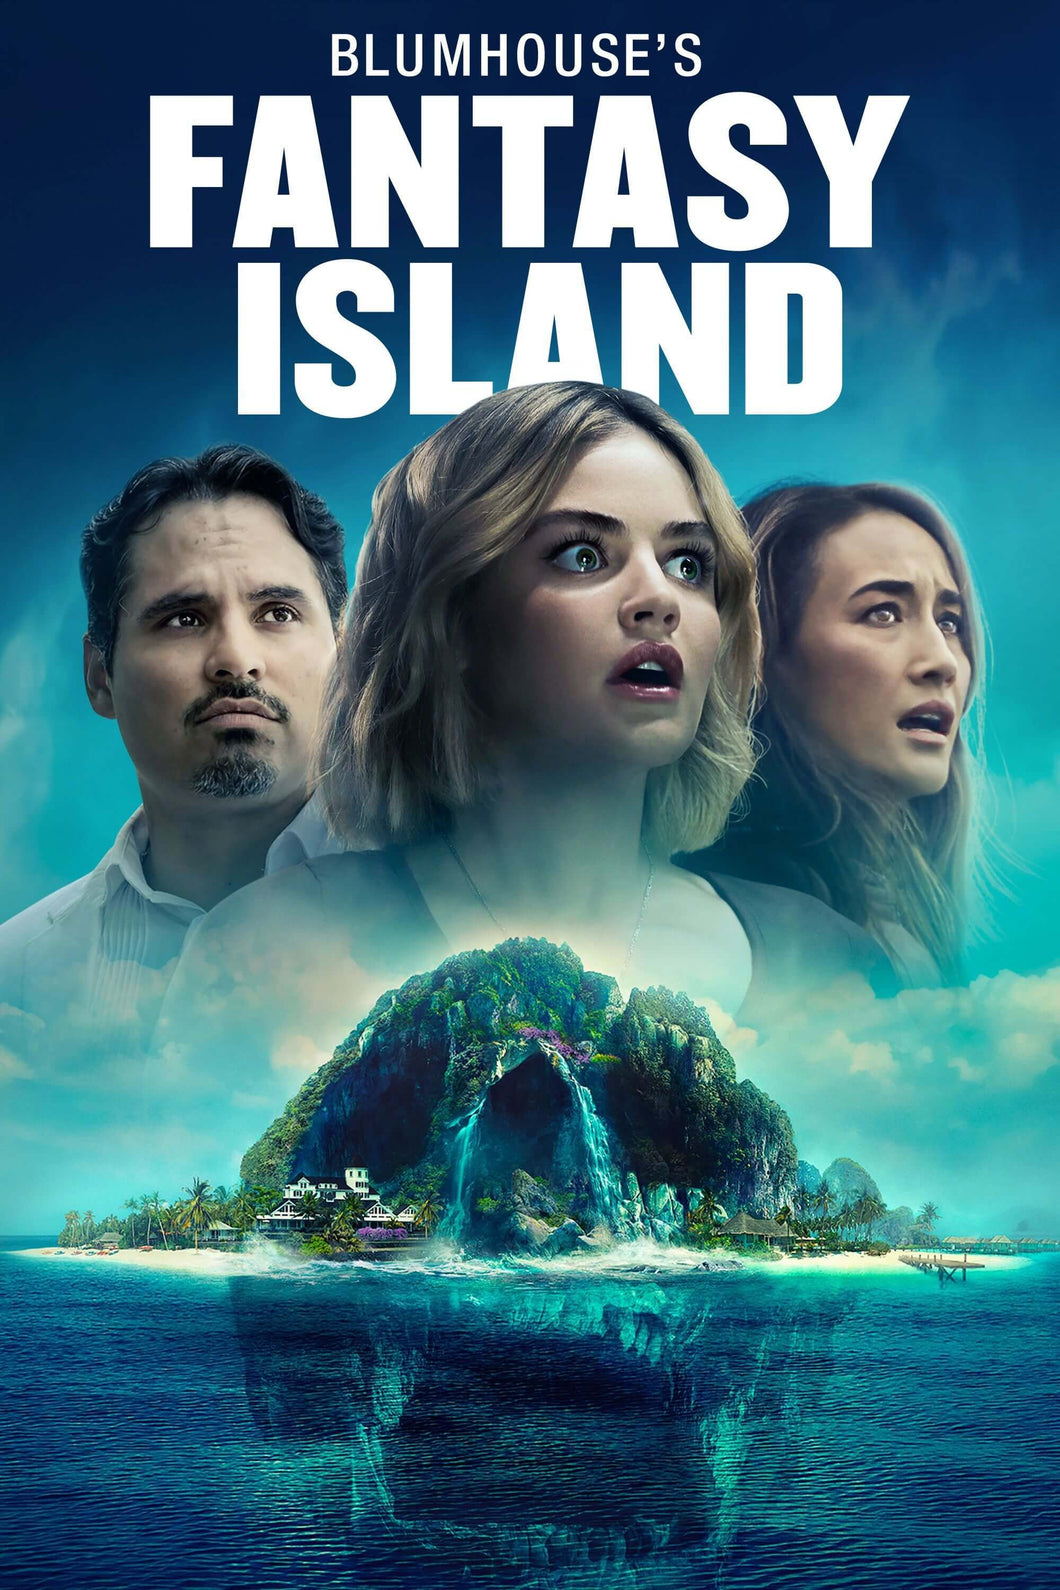 Blumhouse's Fantasy Island (Unrated) | HD Movies Anywhere Code Ports to Vudu, iTunes, GP - Movie Sometimes